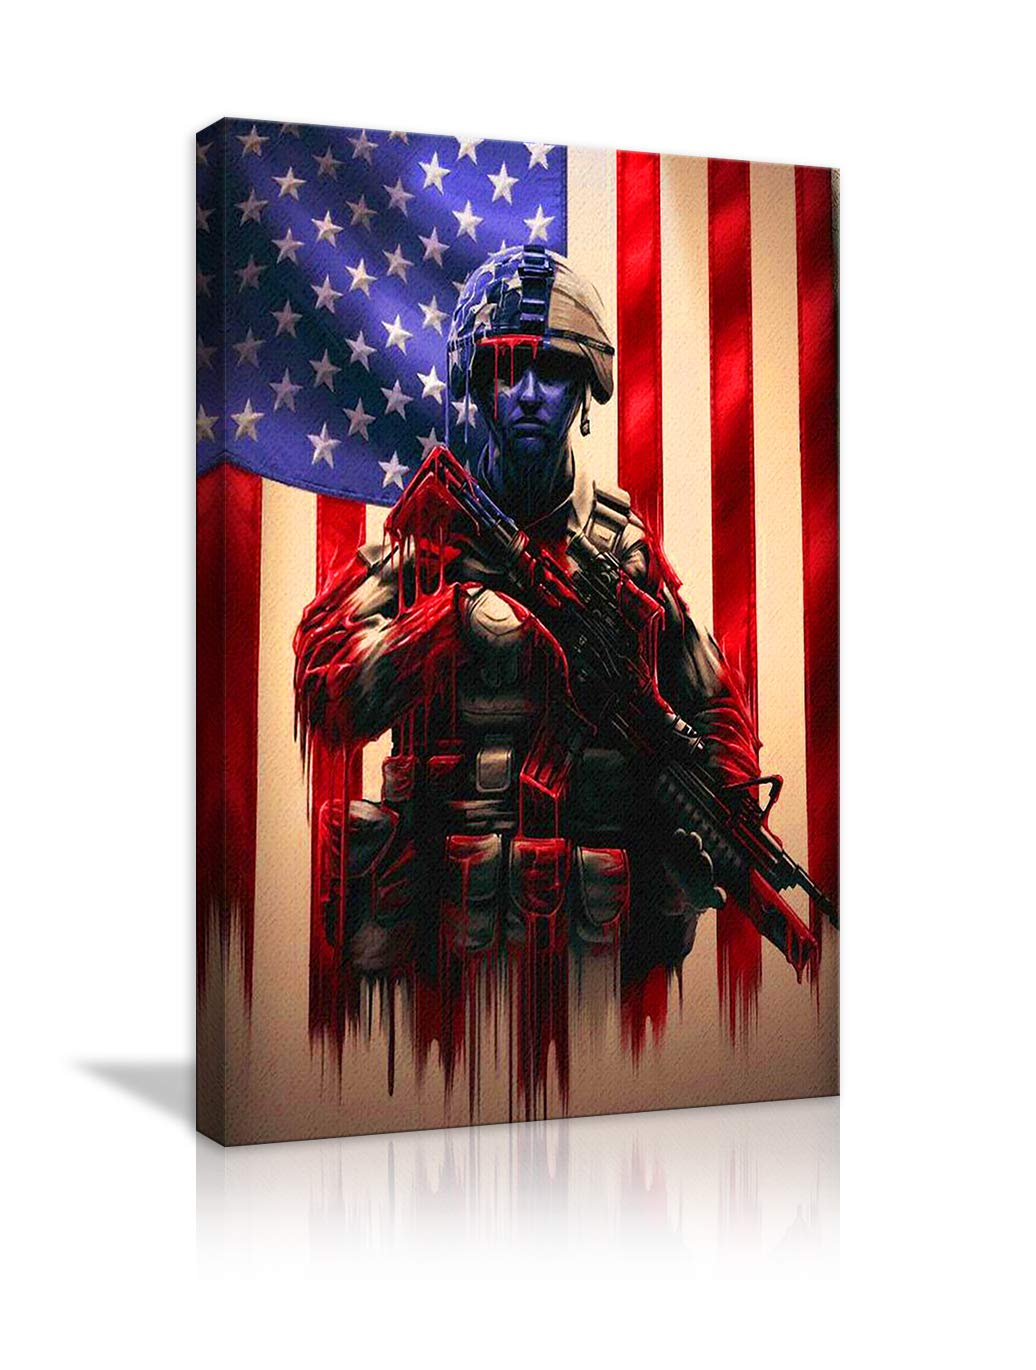 AMEMNY Vintage American Flag Canvas Wall Military Soldiers Army Pictures Modern Painting Red White Blue Stars Stripes Pictures for Living Room Bedroom Bathroom Office Decor Framed Ready to Hang